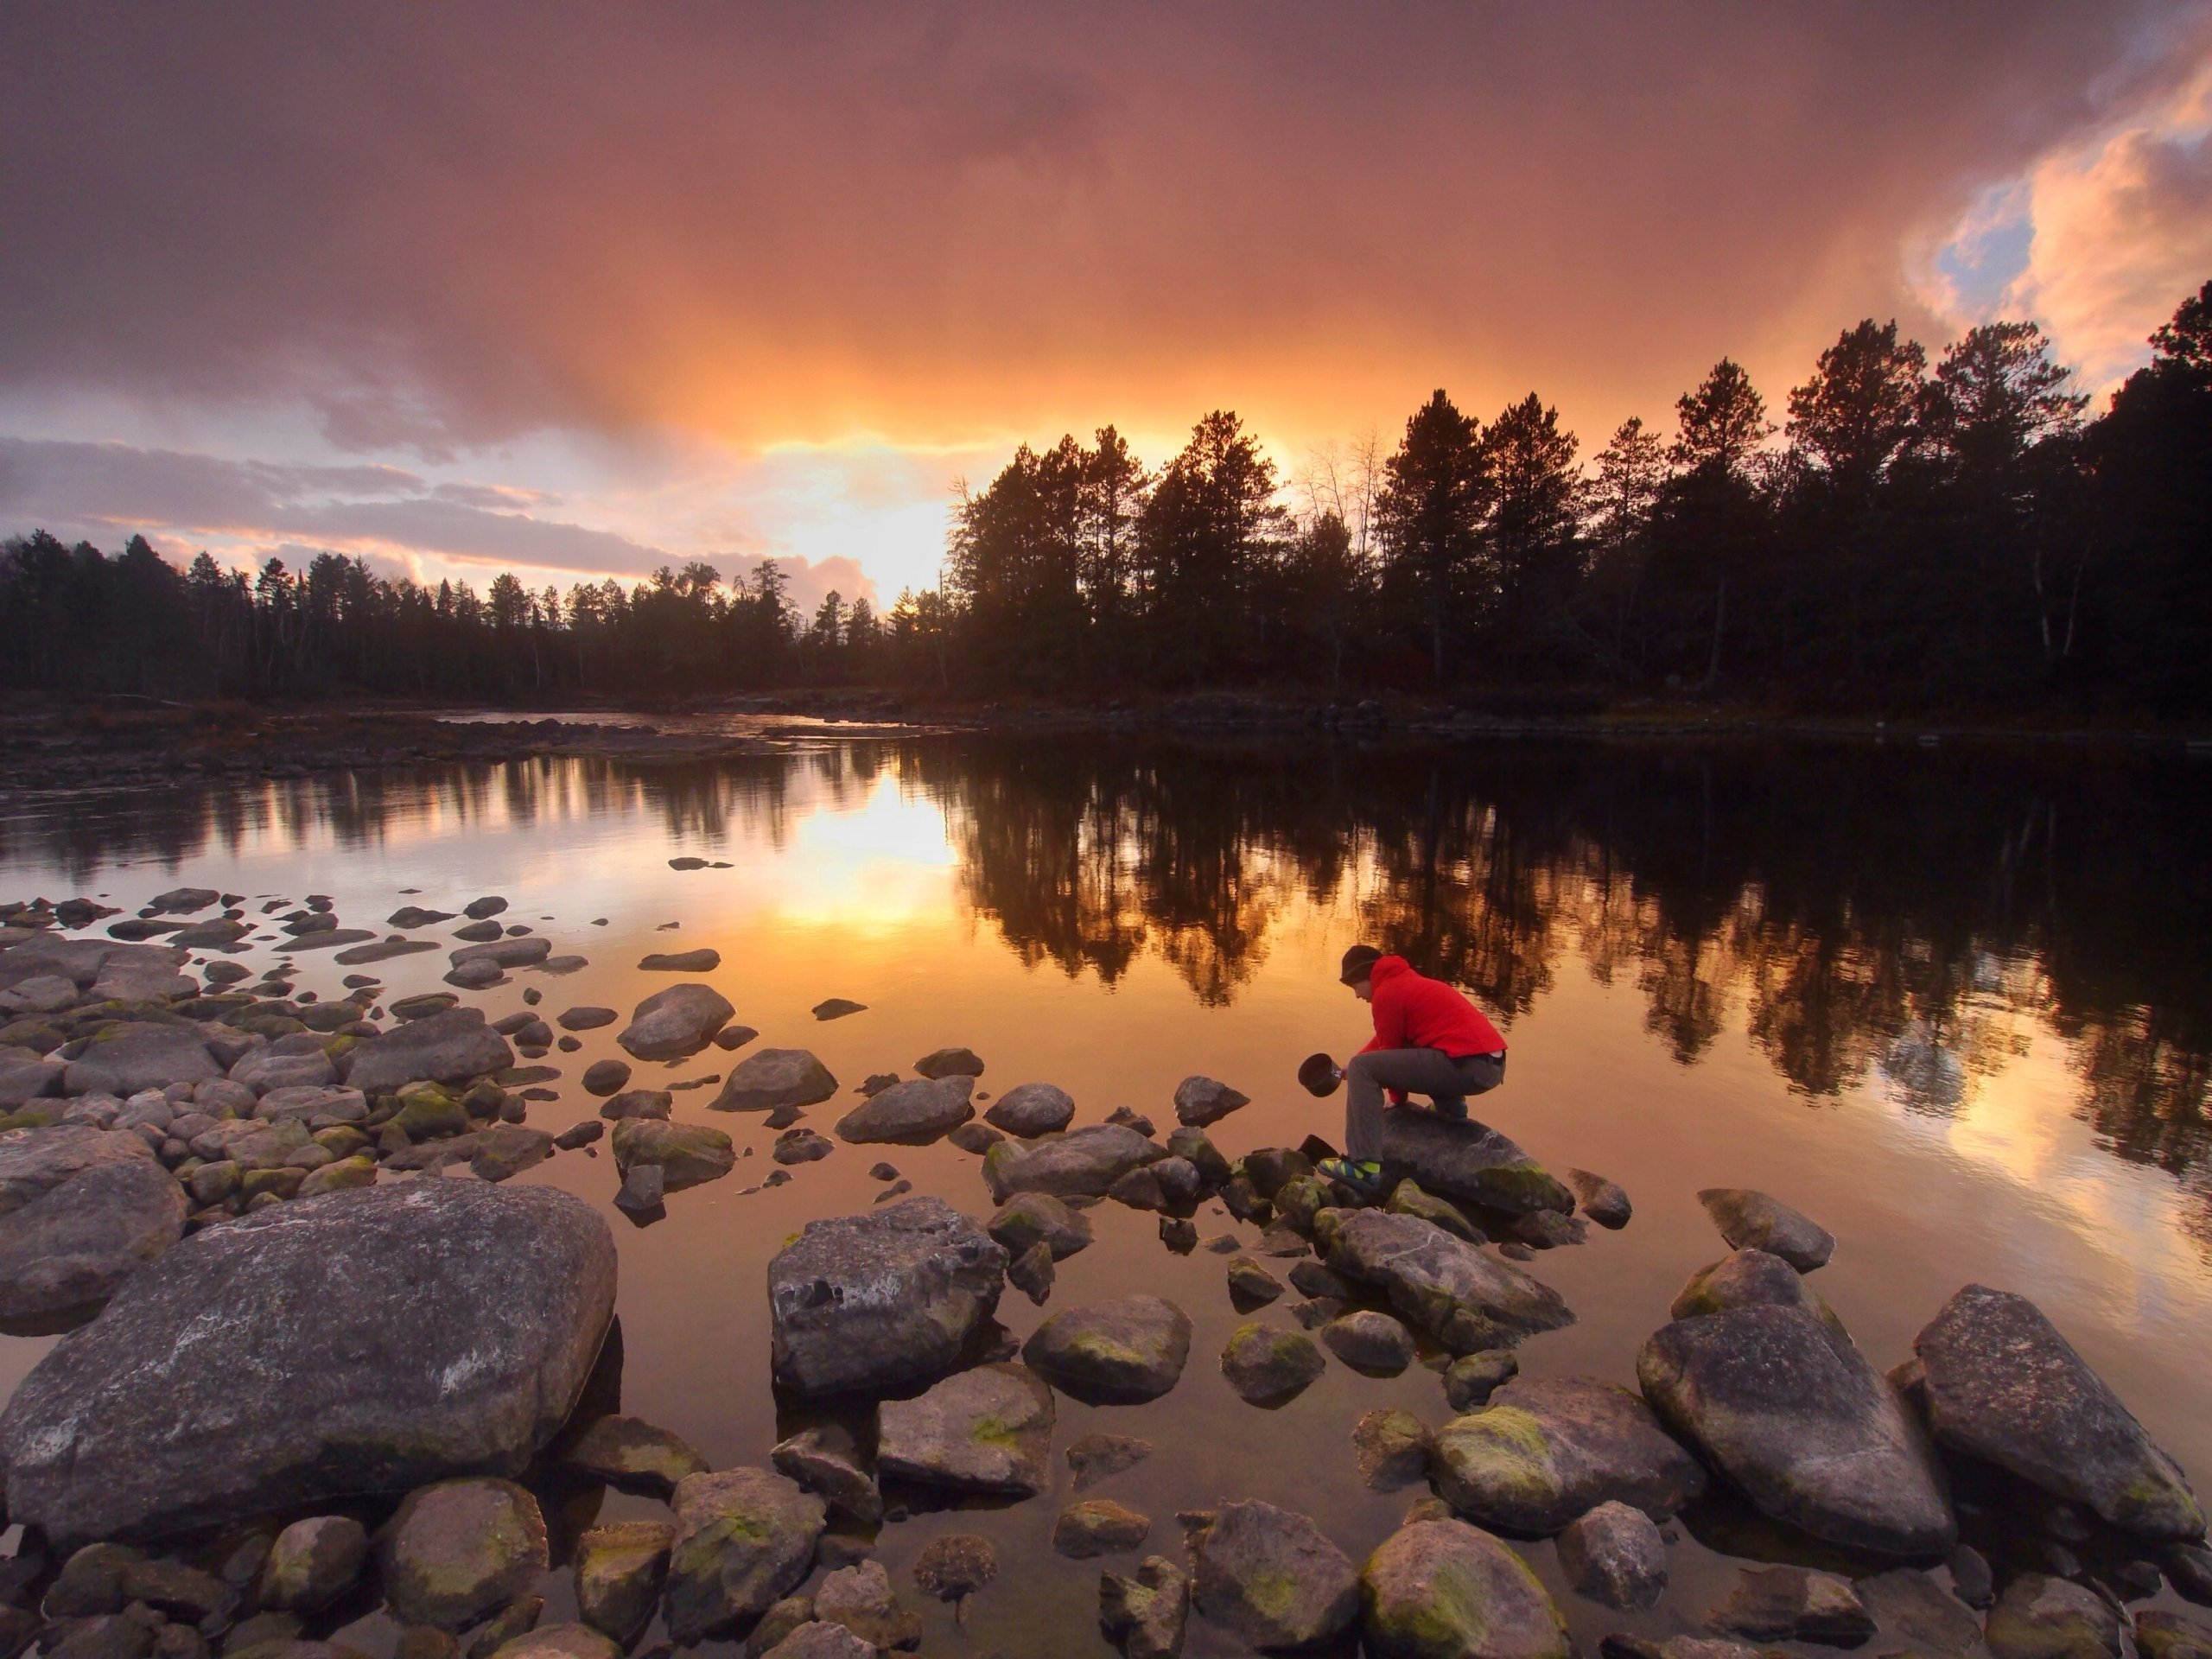 If you want to save the Boundary Waters, this election is pivotal